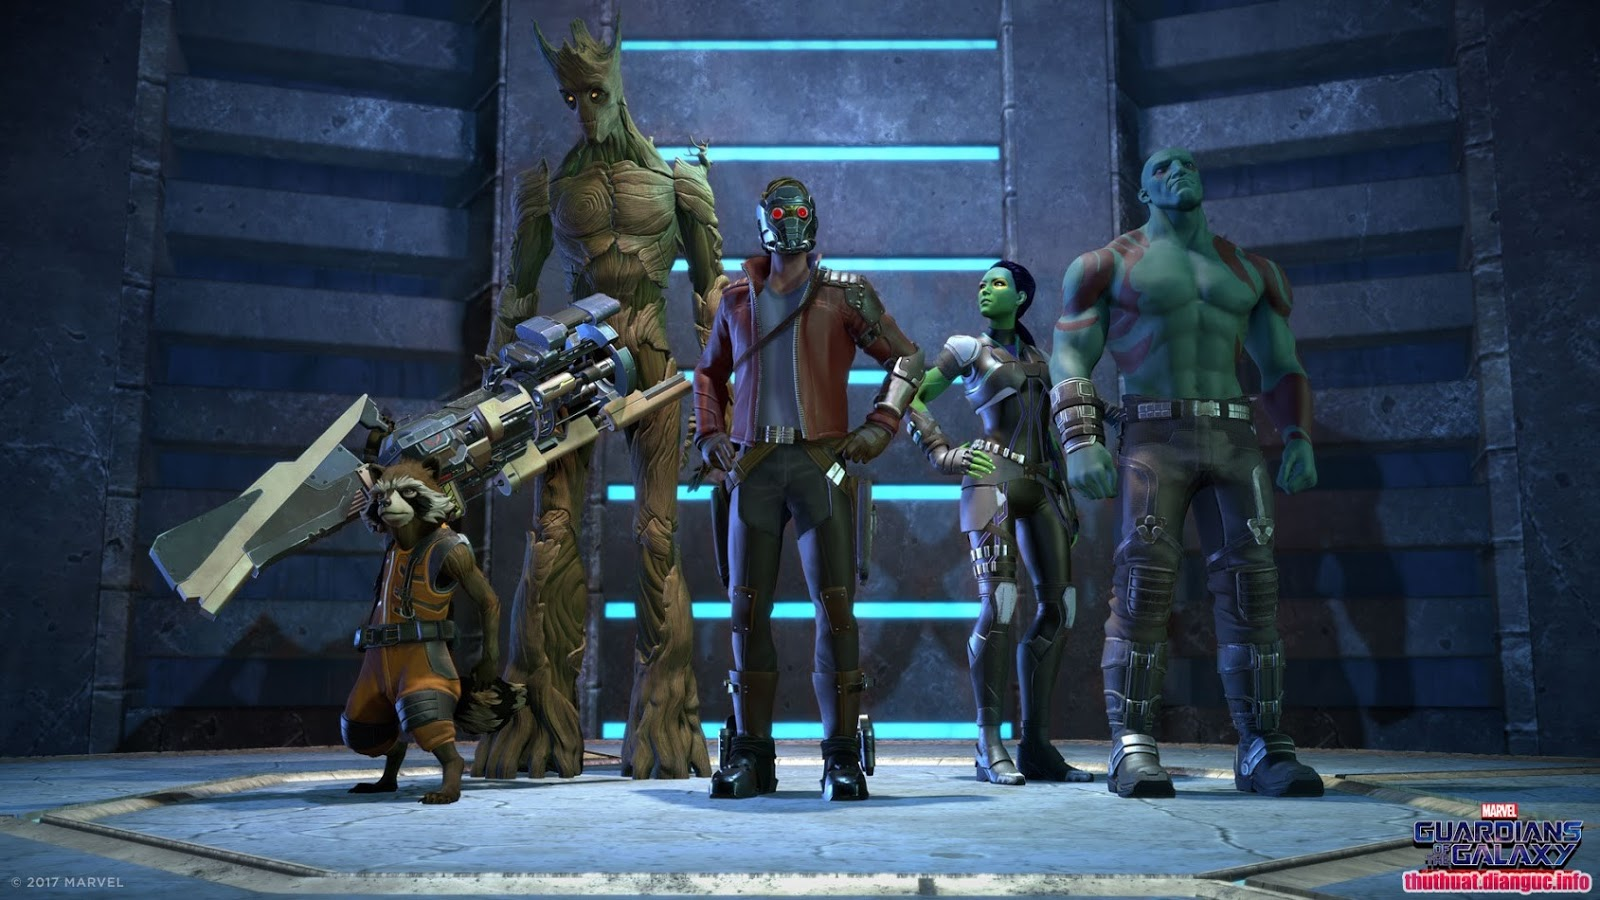 Download game phiêu lưu Marvels Guardians of the Galaxy Episode 1 , Marvel's Guardians of the Galaxy: The Telltale Series Free Download